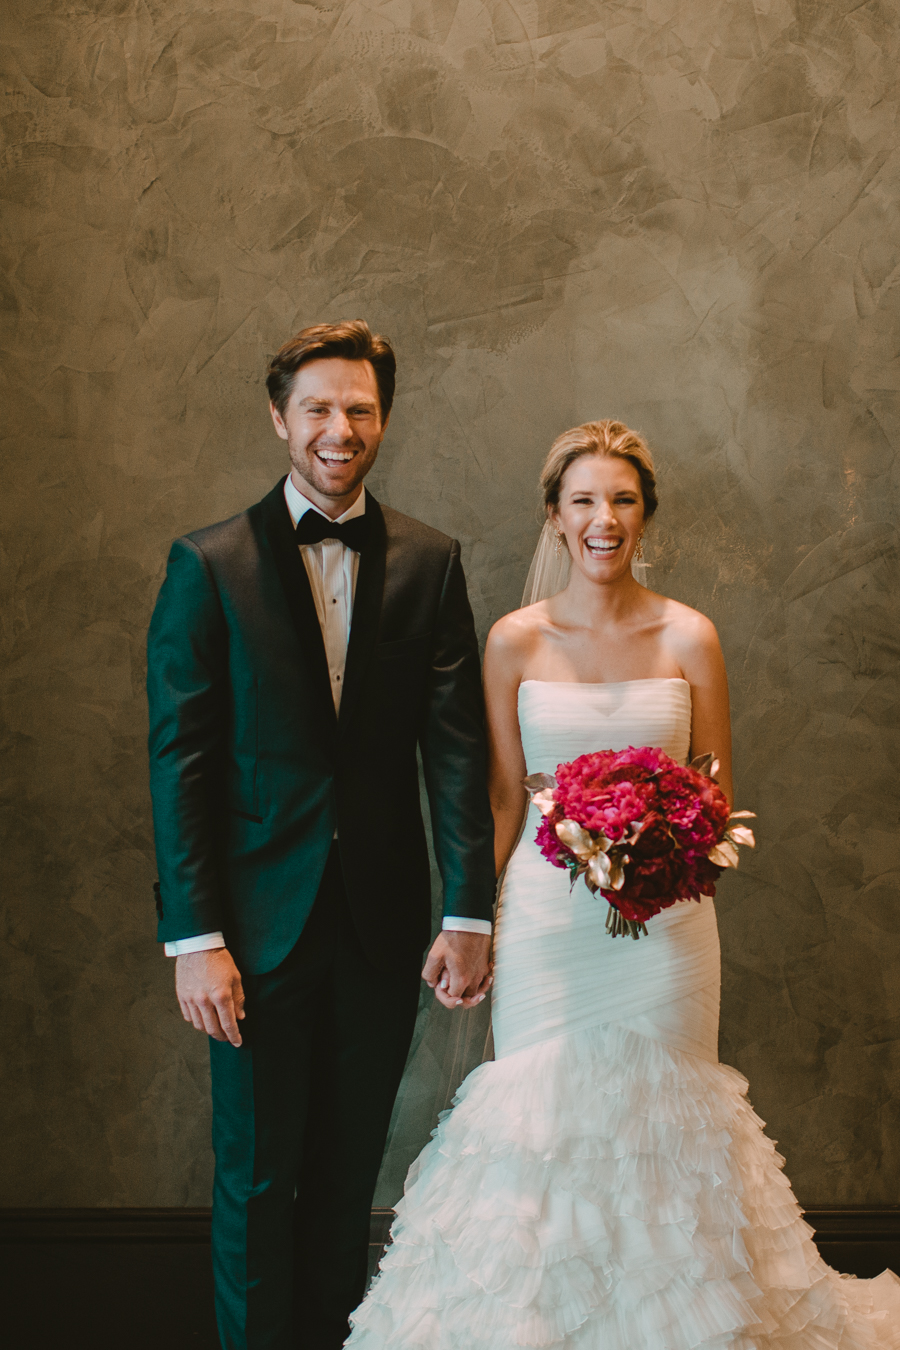 Loren and Alex Kuznetsov Gold and Burgundy wedding at Epicurean Tampa Royal Fall Wedding in Tampa Florida Inside Weddings MD Events Tampa-110.jpg